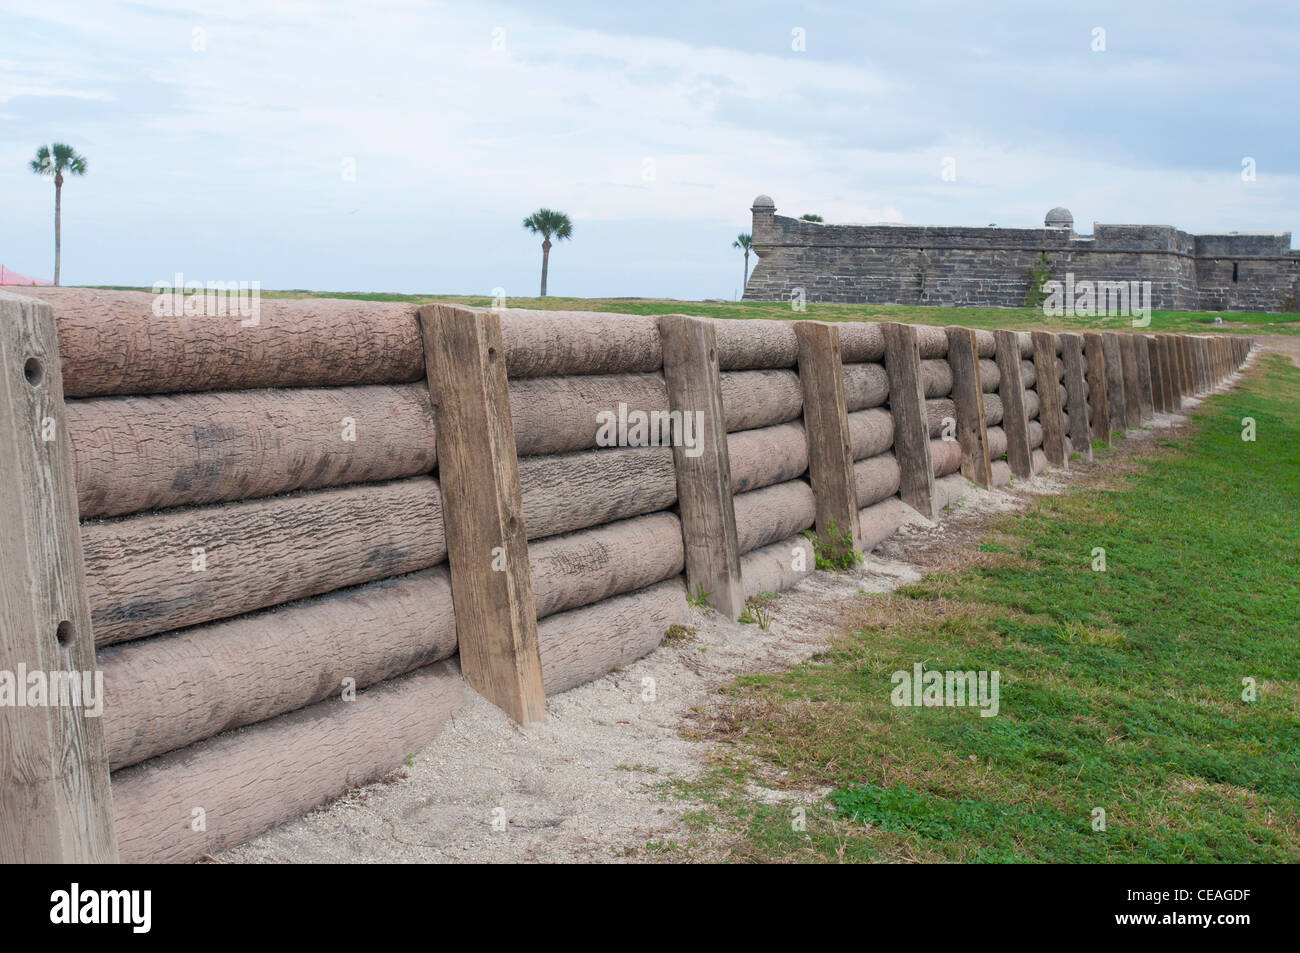 Wooden, palm tree trunk city wall in St Augustine, Florida